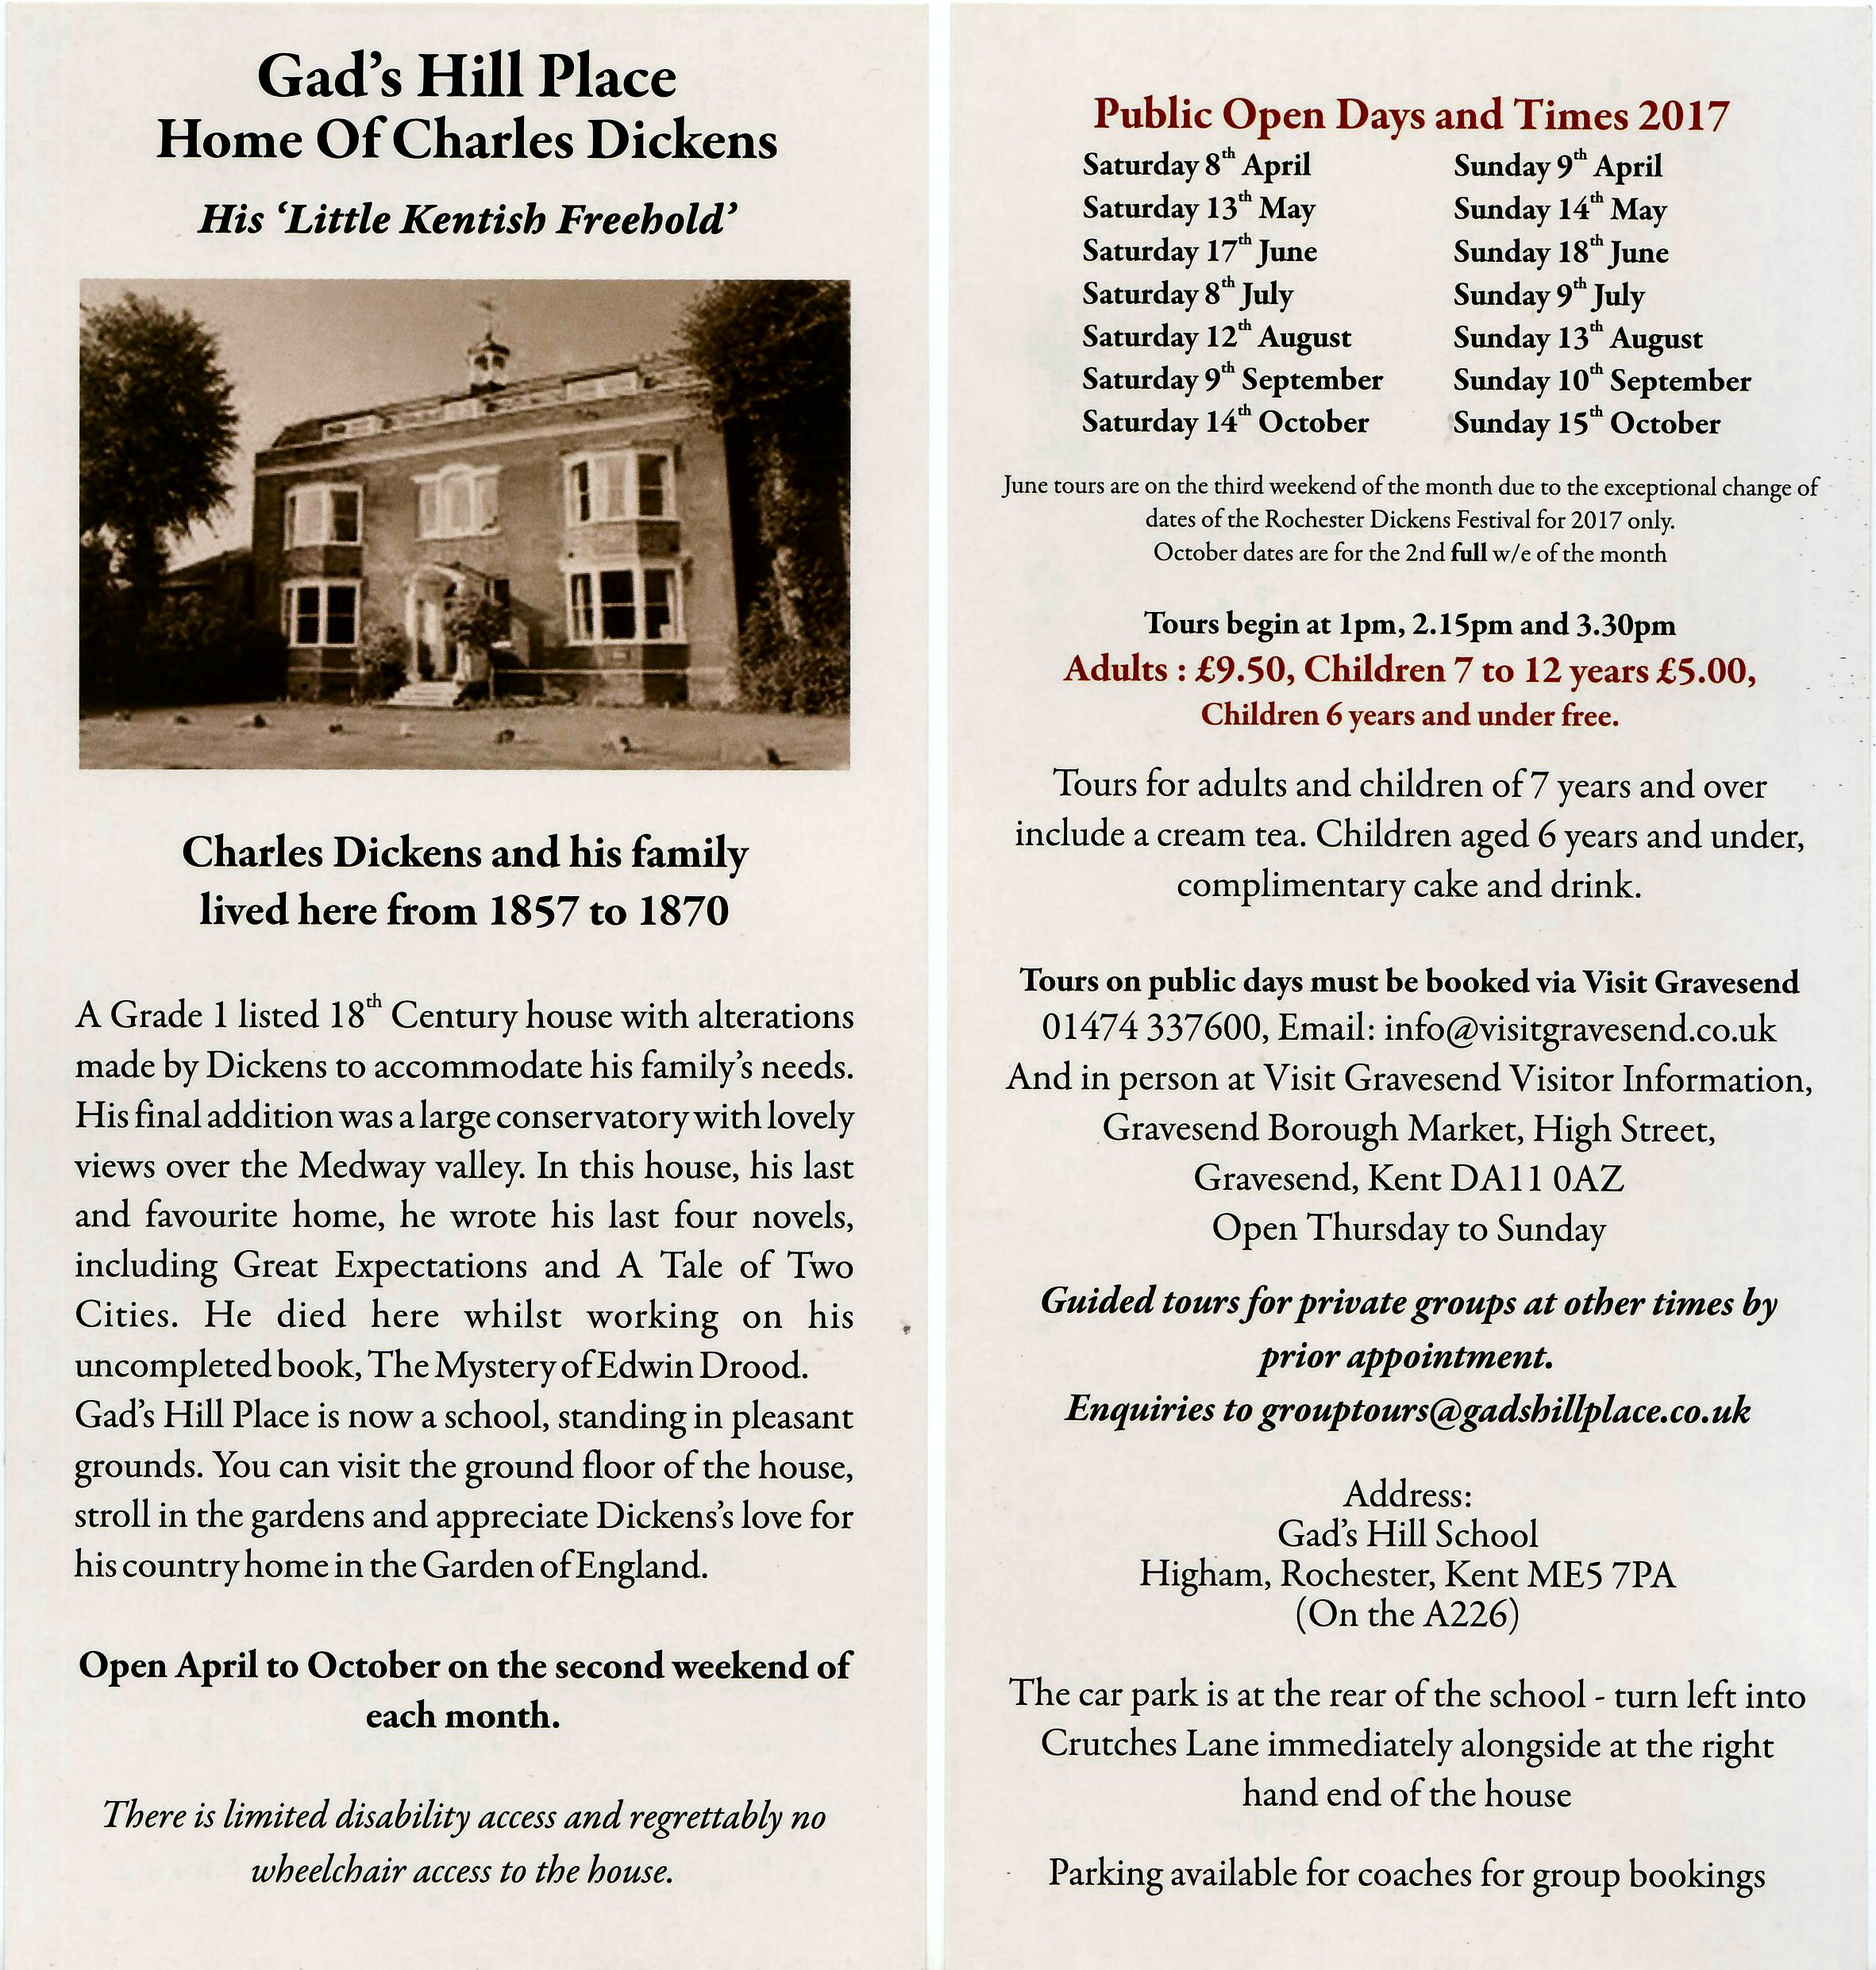 Gads Hill Place Near Higham In Kent Will Again Be Open To The Public On Specific Days 2017 Courtesy Of Guides From Rochester Chatham Branch